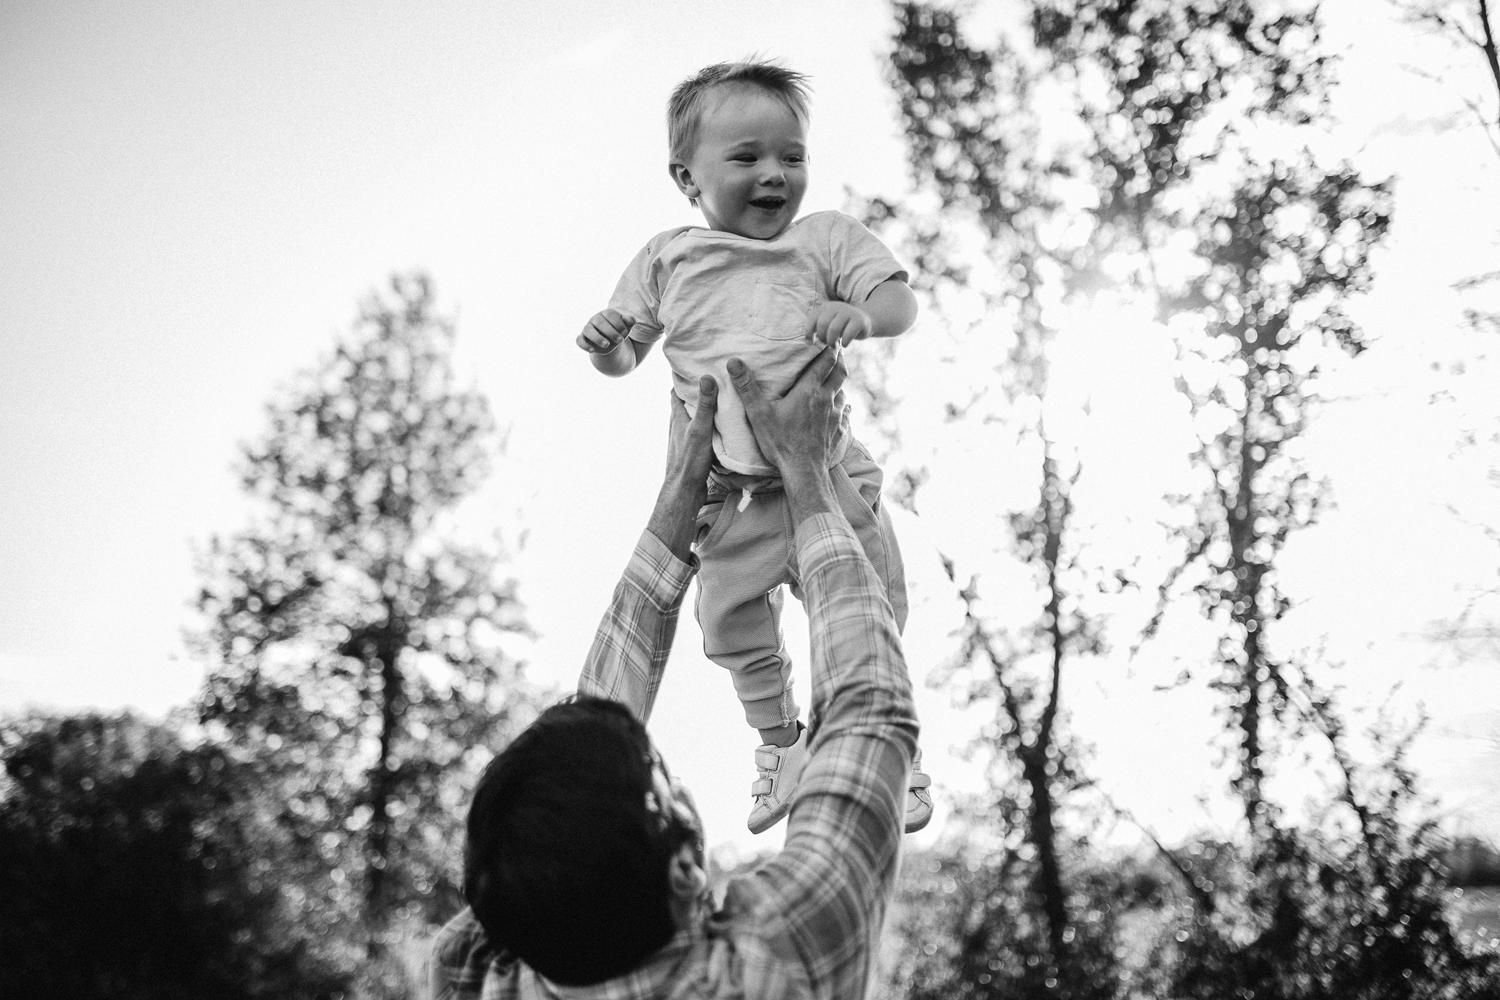 perth lanark county family outdoor photographer - kerry ford photography-051.jpg